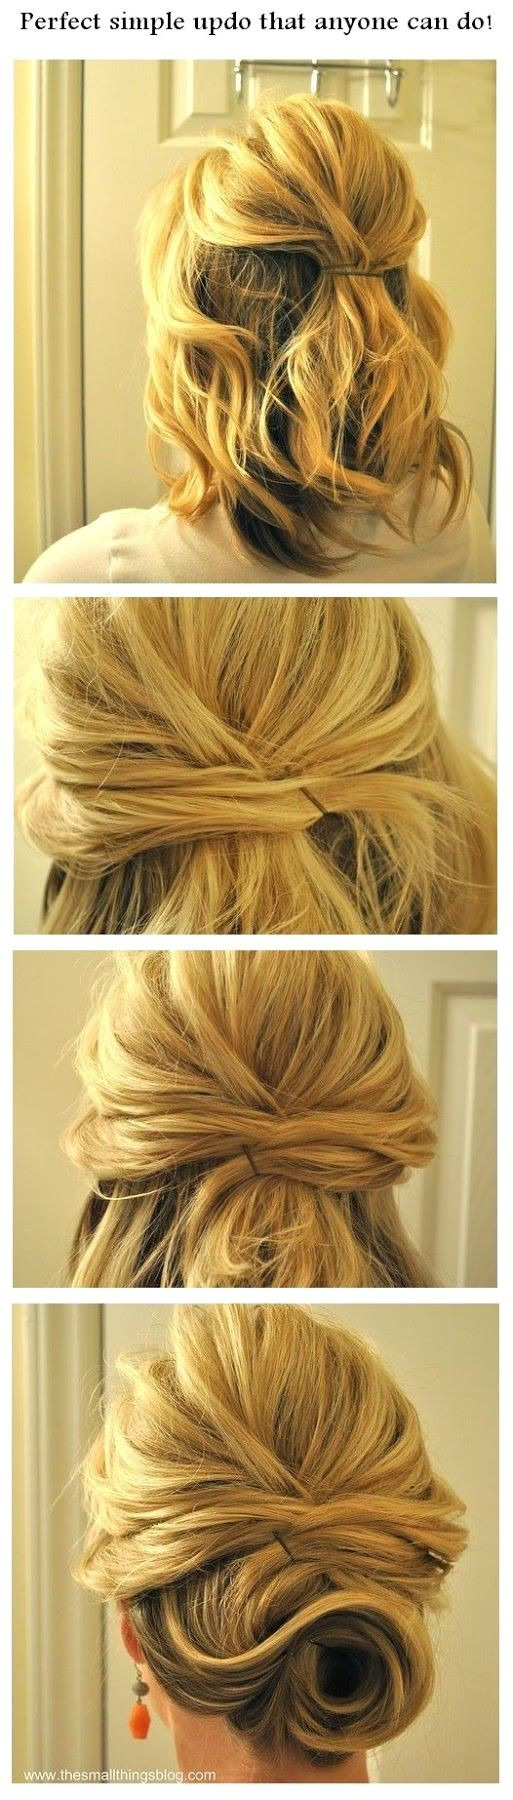 Easy Hairstyles for Medium Length Hair Step by Step 10 Amazing Step by Step Hairstyles for Medium Length Hair